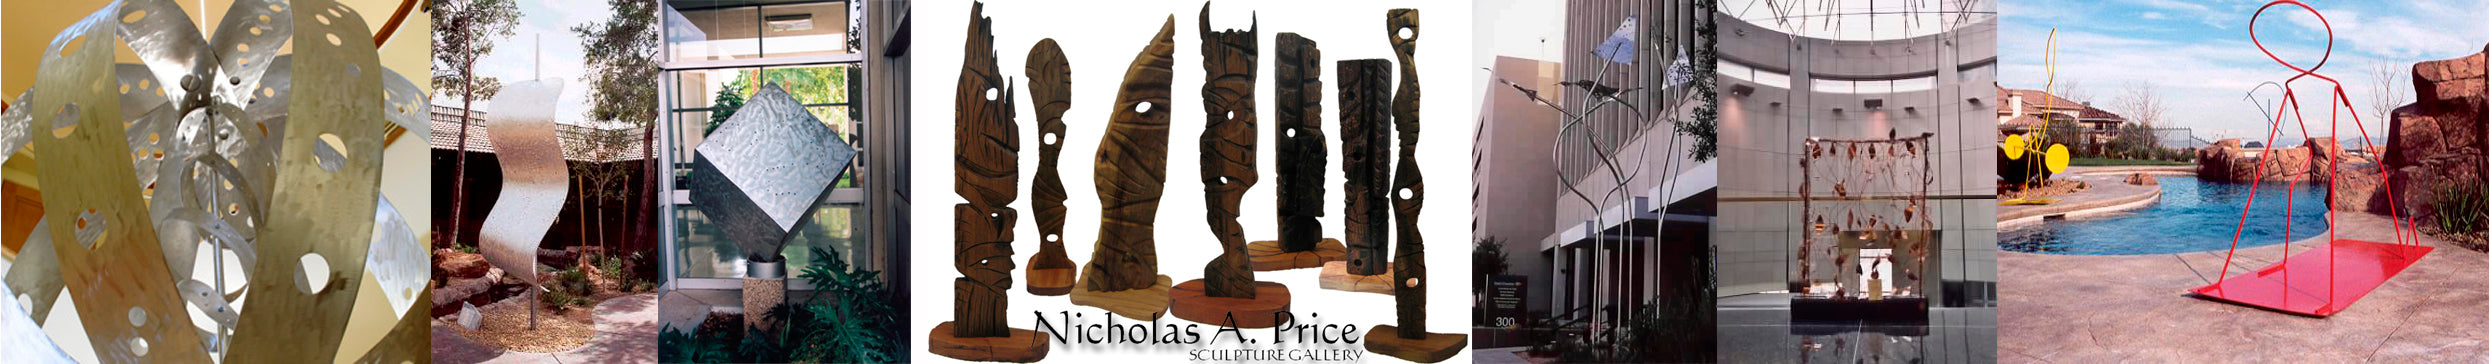 Nicholas A. Price Sculpture Gallery